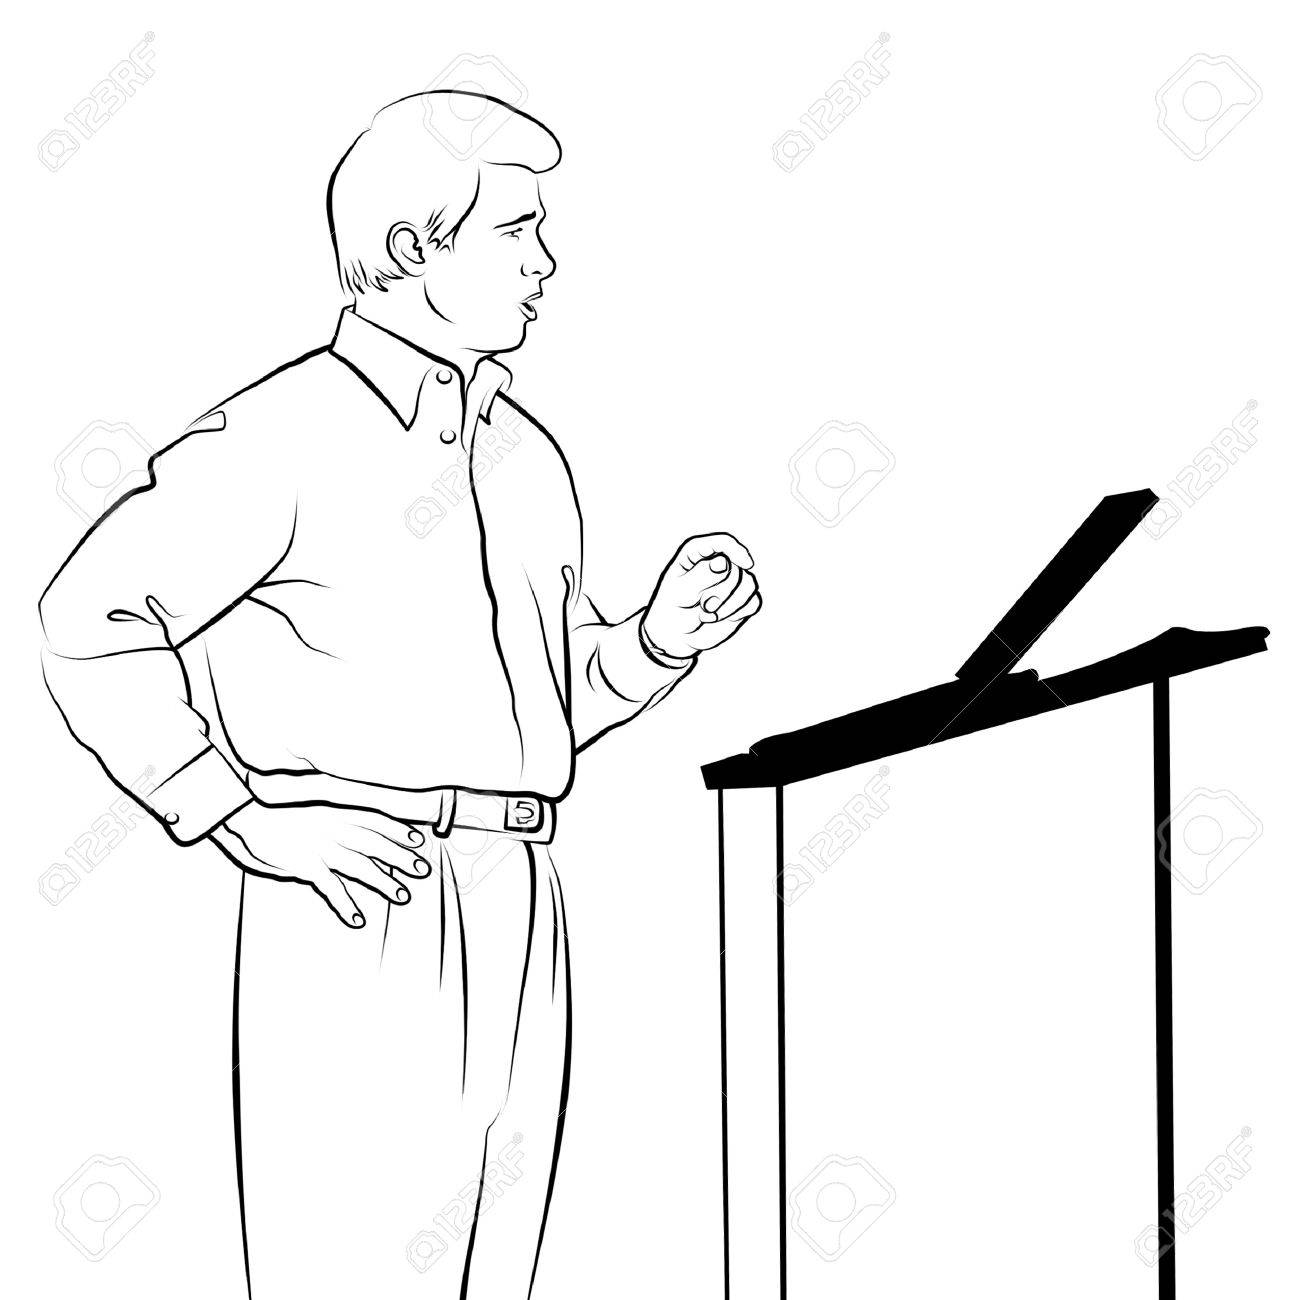 1300x1300 Line Drawing Of Speaker With Podium. Stock Photo, Picture